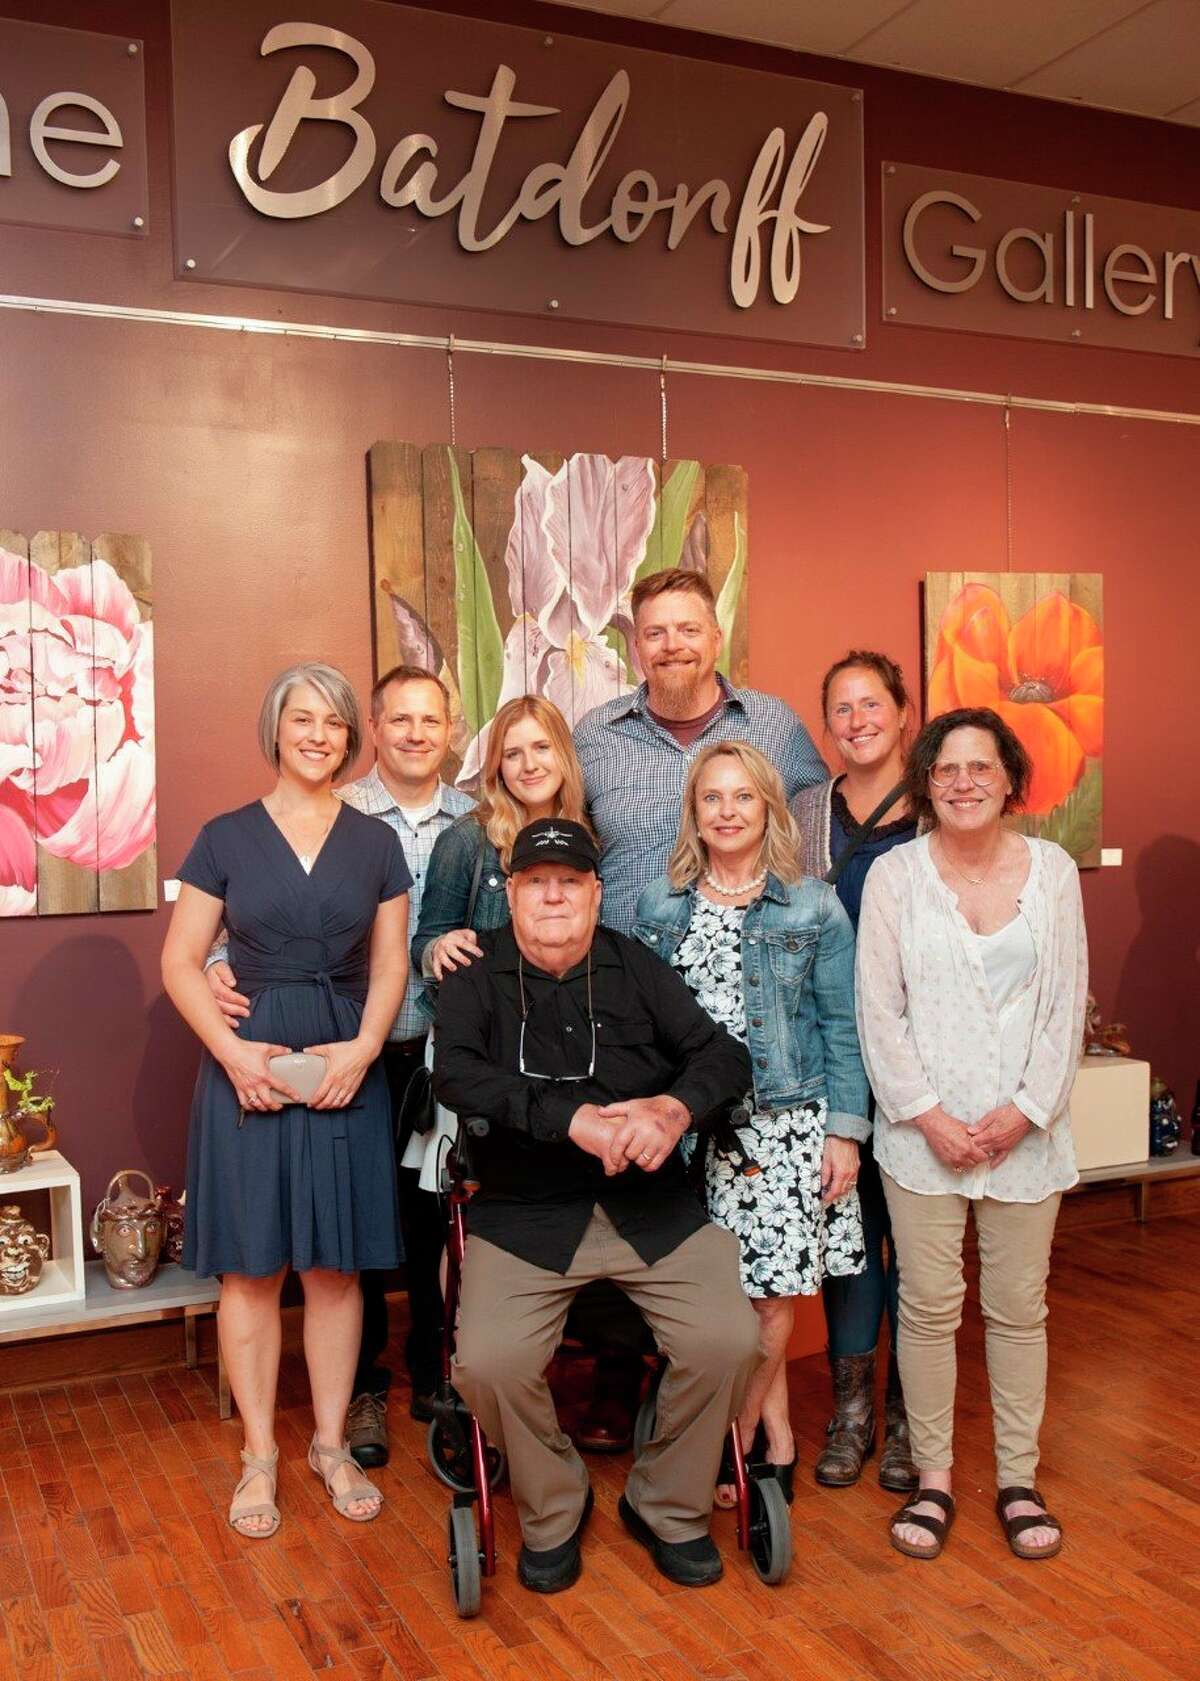 Last June, Jack and Susan Batdorff decided to pay off the mortgage for the building owned by Artworks in downtown Big Rapids in an effort to support local artists and their endeavors.Lynne Scheible, director of Artworks, said to show their immense gratitude, the Artworks board agreed to officially rename the gallery after the couple. (Courtesy photo)